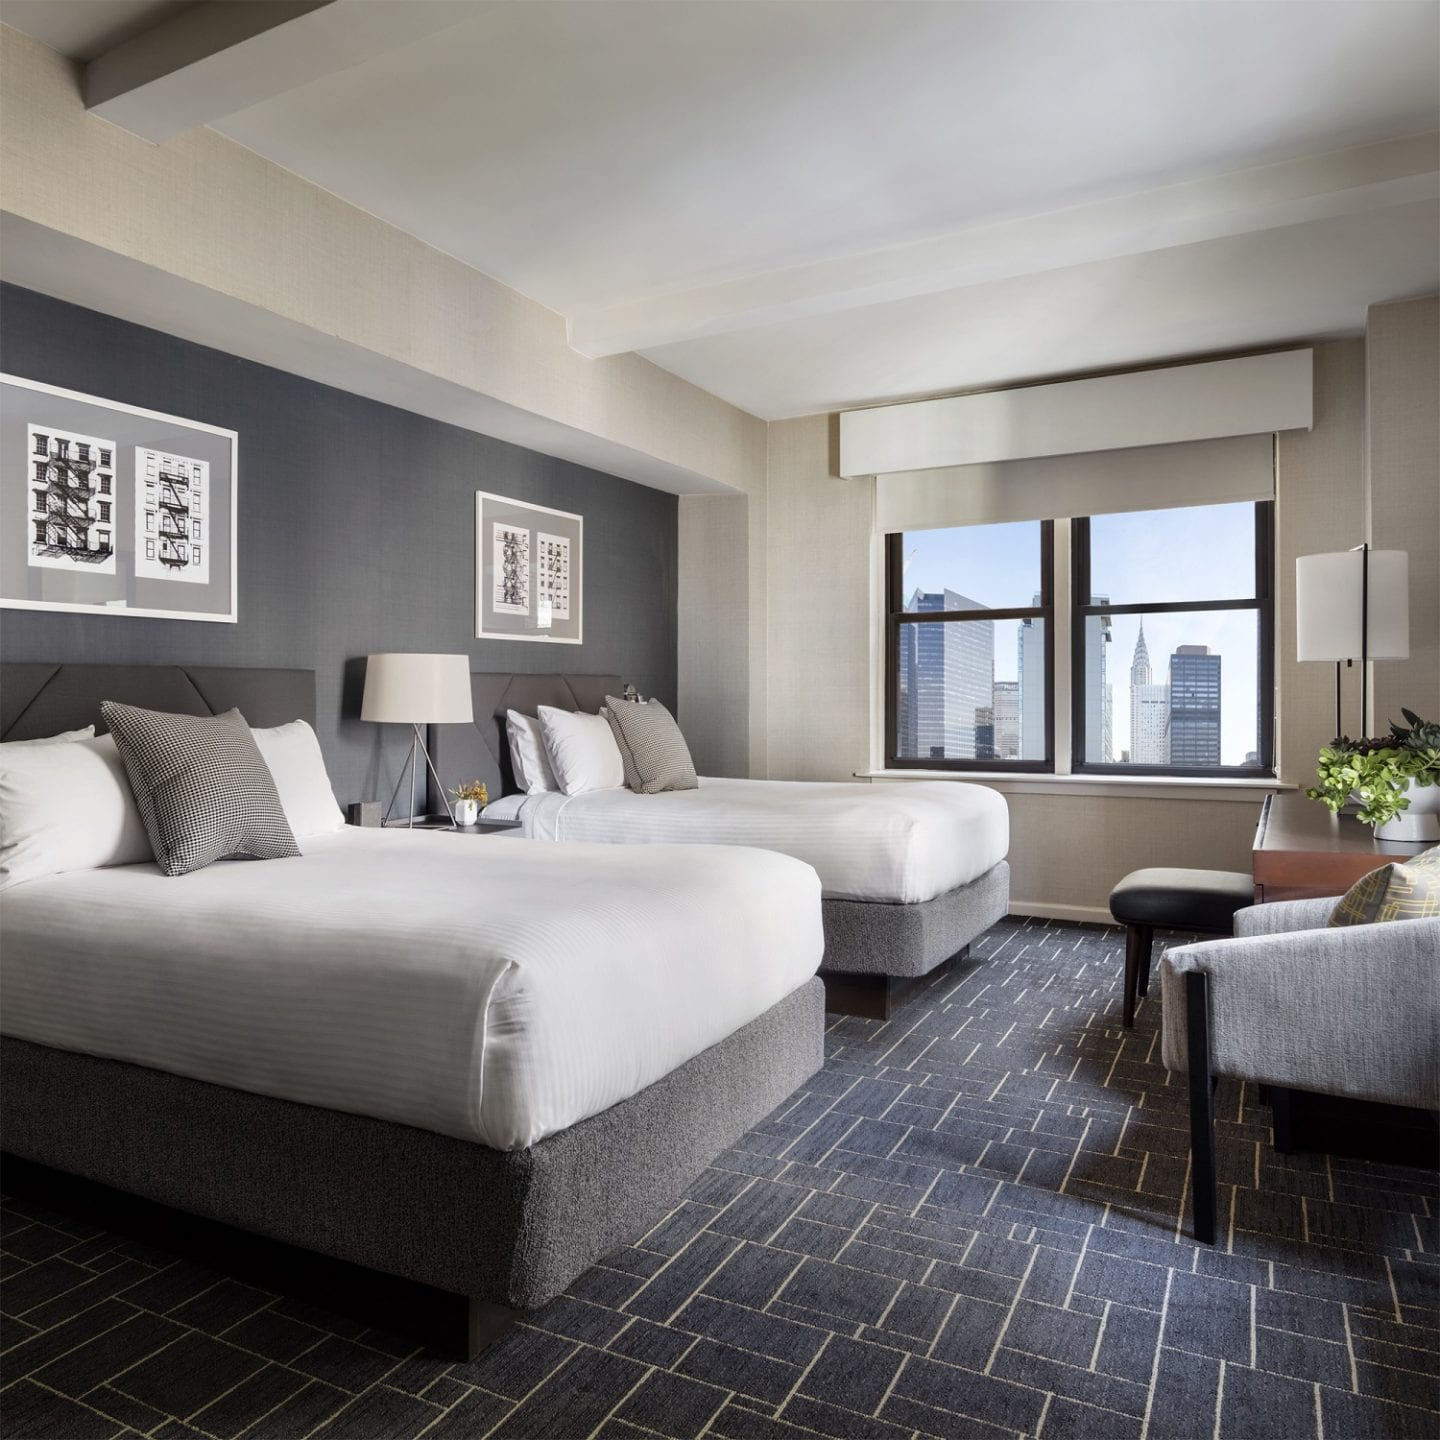 Shelburne Hotel & Suites, NYC | Murray Hill Hotel in Midtown